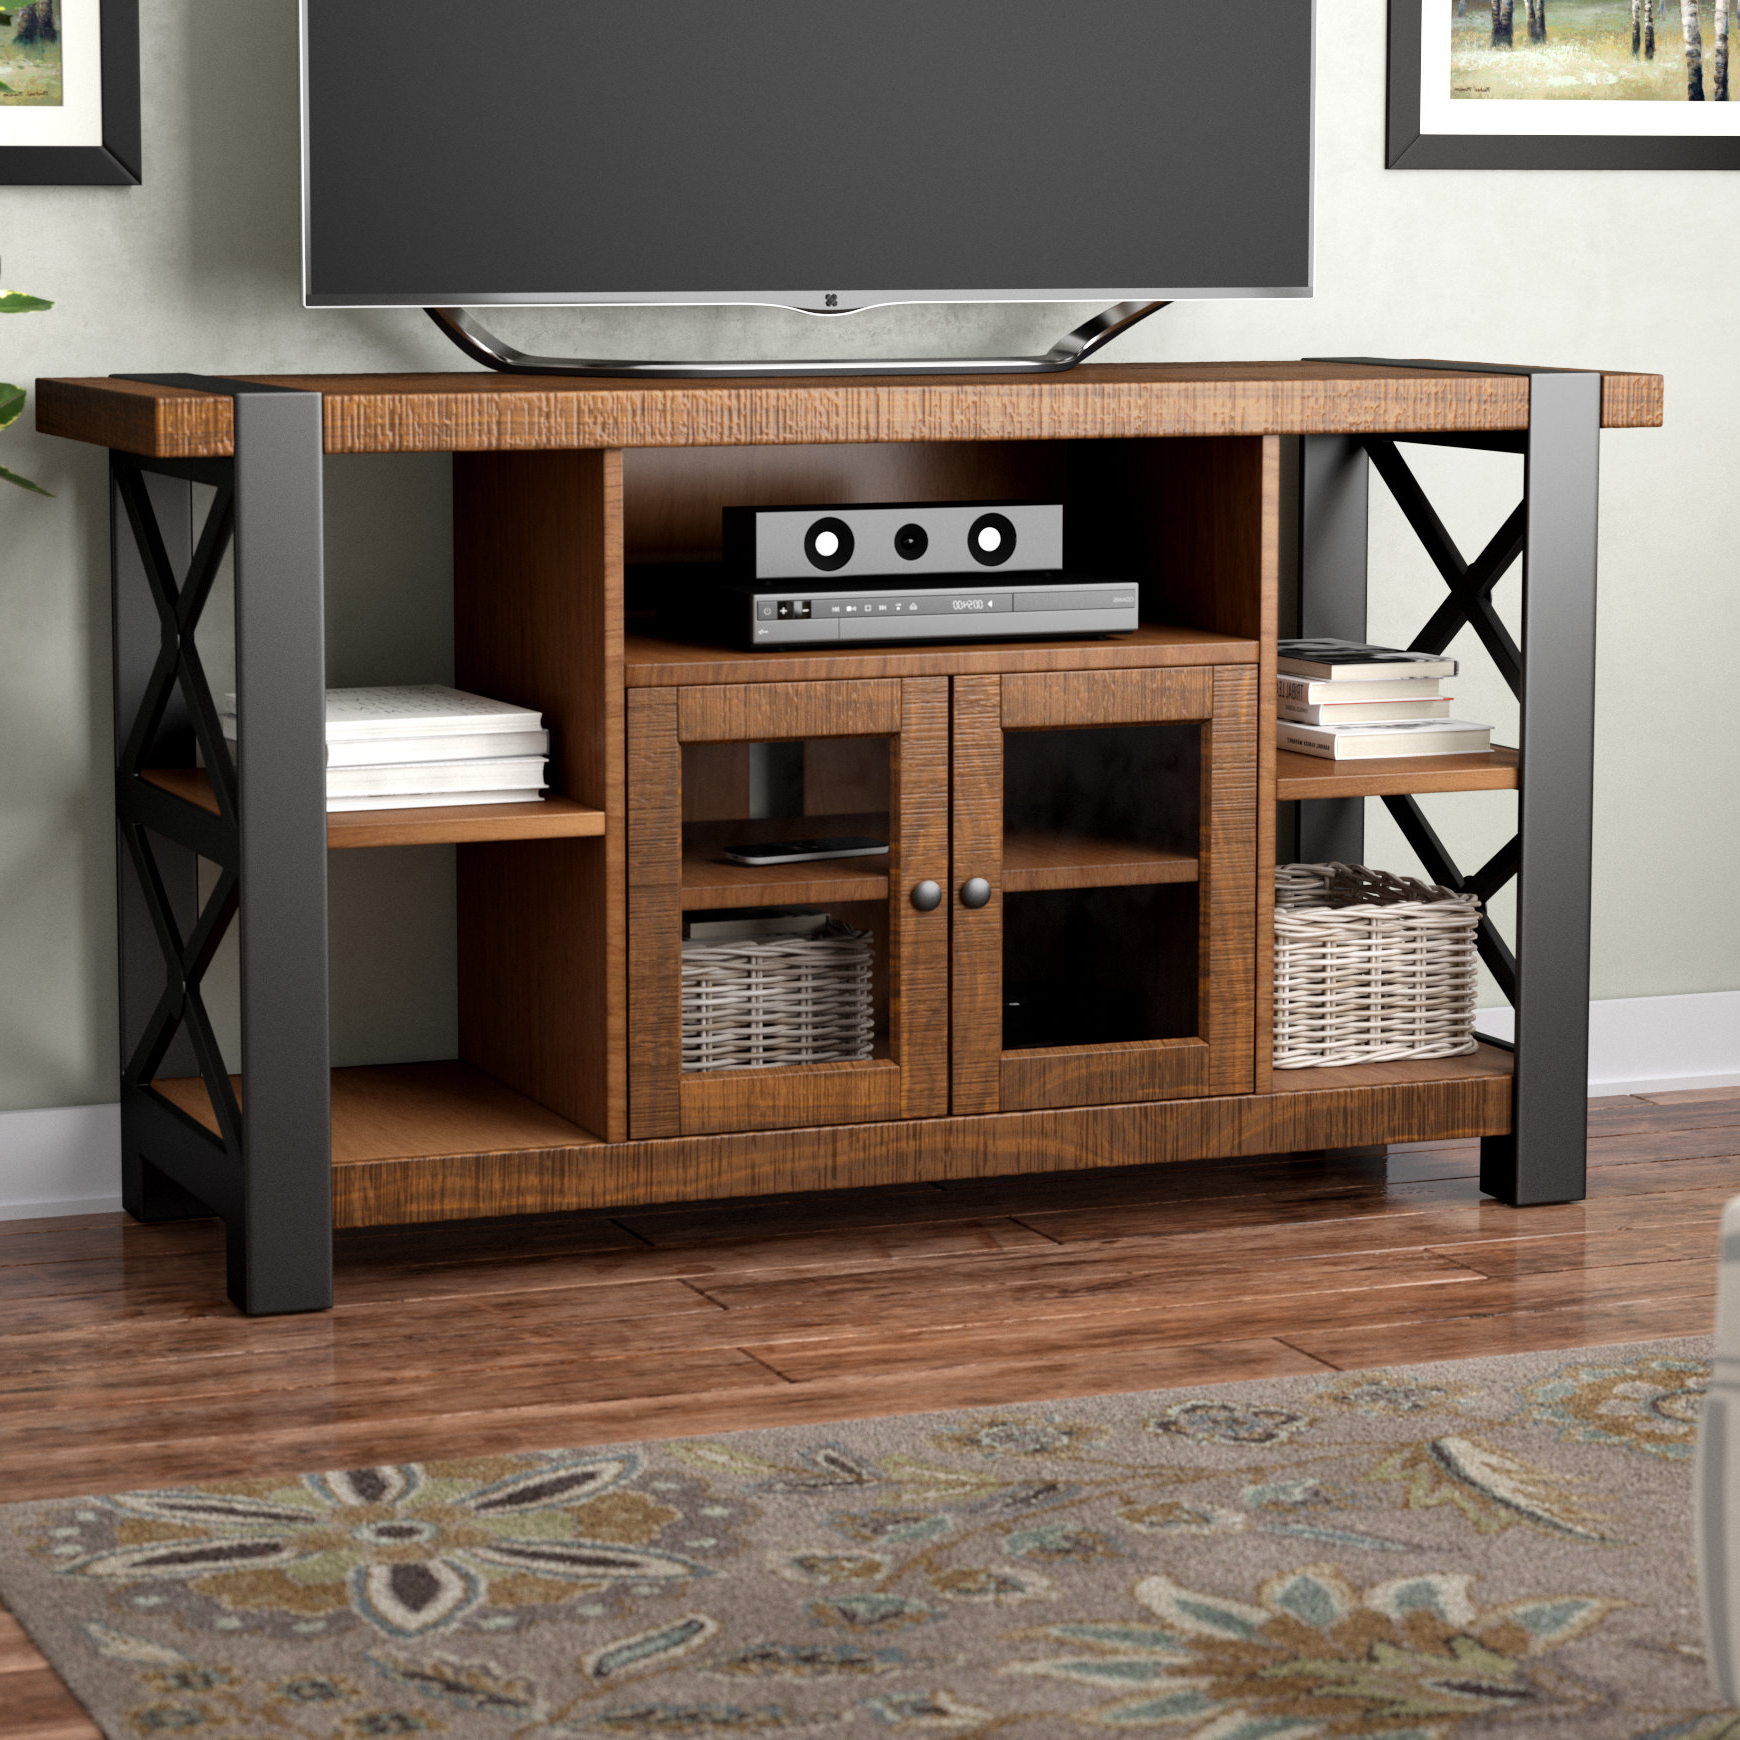 "Red Barrel Studio Monmouth Tv Stand For Tvs Up To 55"" & Reviews With Regard To Valencia 70 Inch Tv Stands (View 13 of 20)"